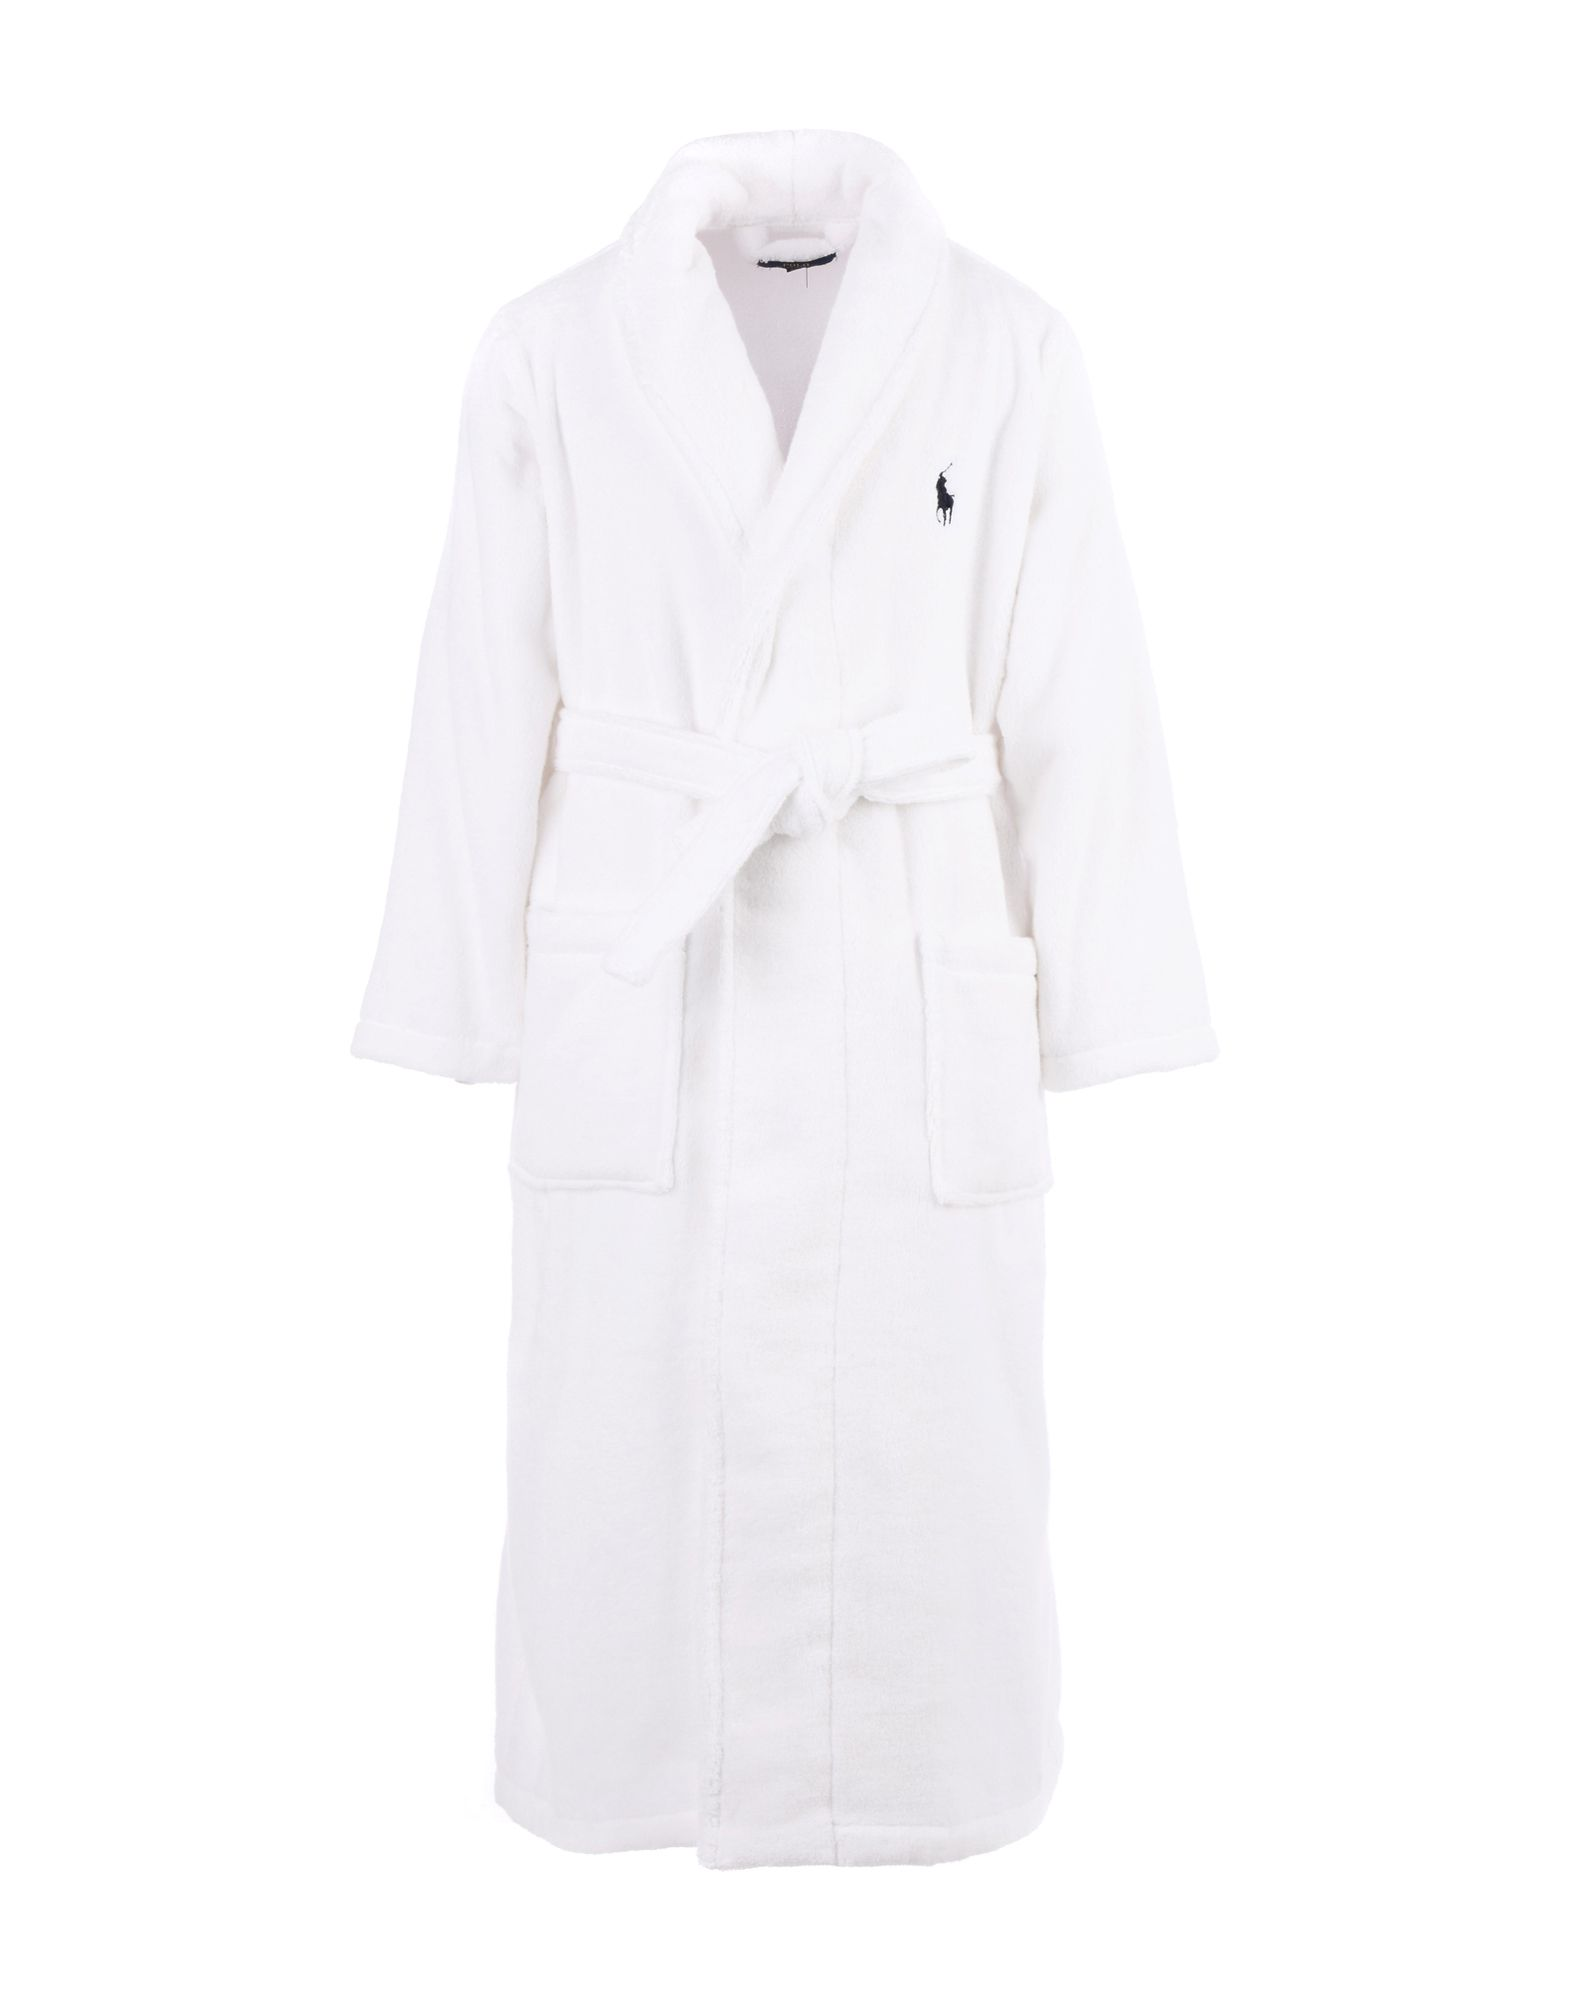 Teli Mare E Accappatoi Polo Ralph Lauren Cotton Terry Robe - Uomo - Acquista online su